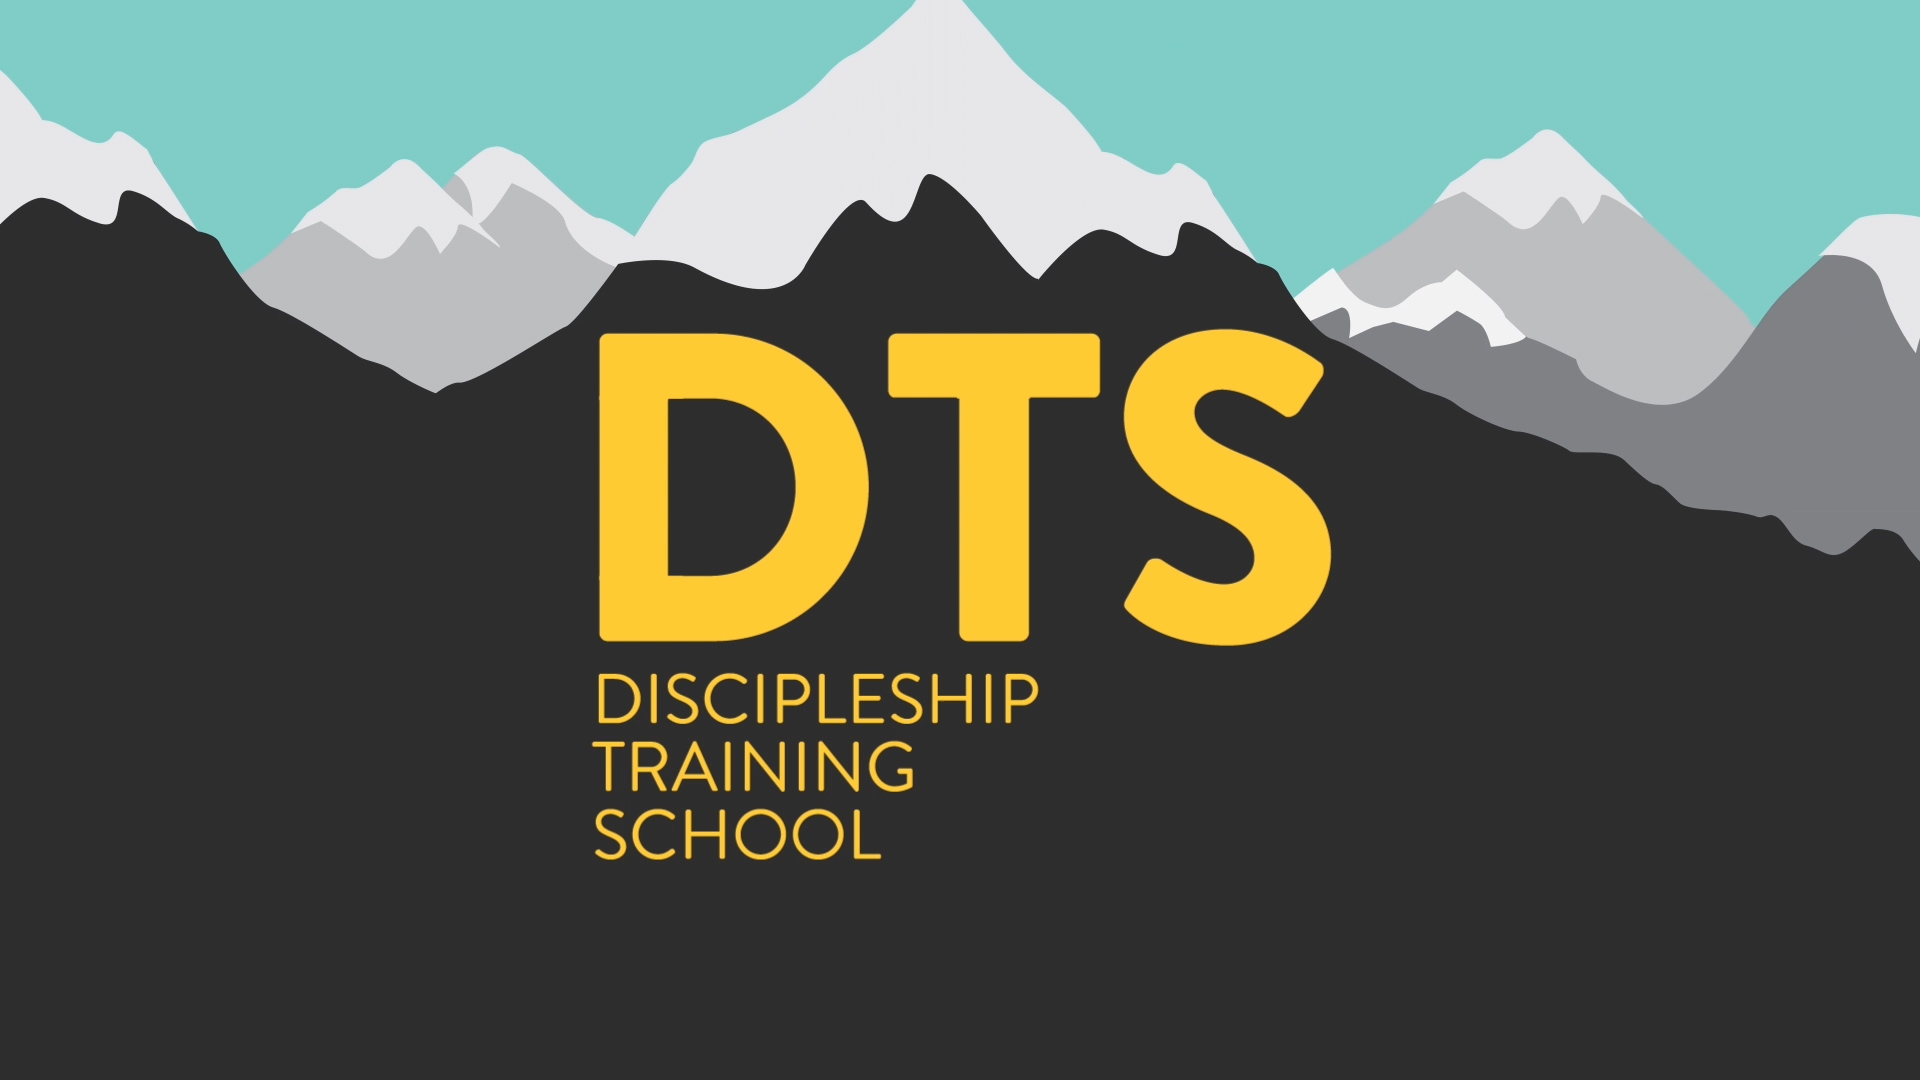 What Are Dts >> What Is Dts Ywam Lausanne